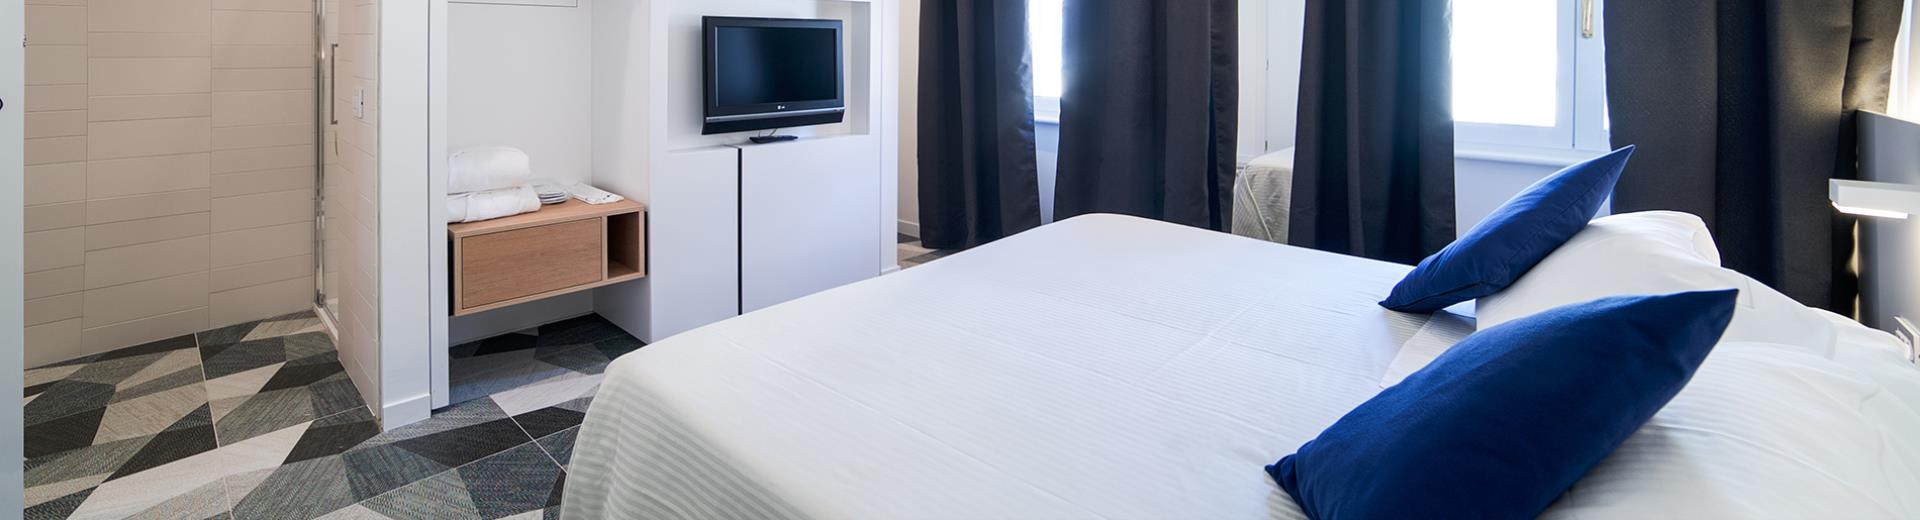 4 star hotel in the city center of Bologna, over 90 design rooms with every comfort